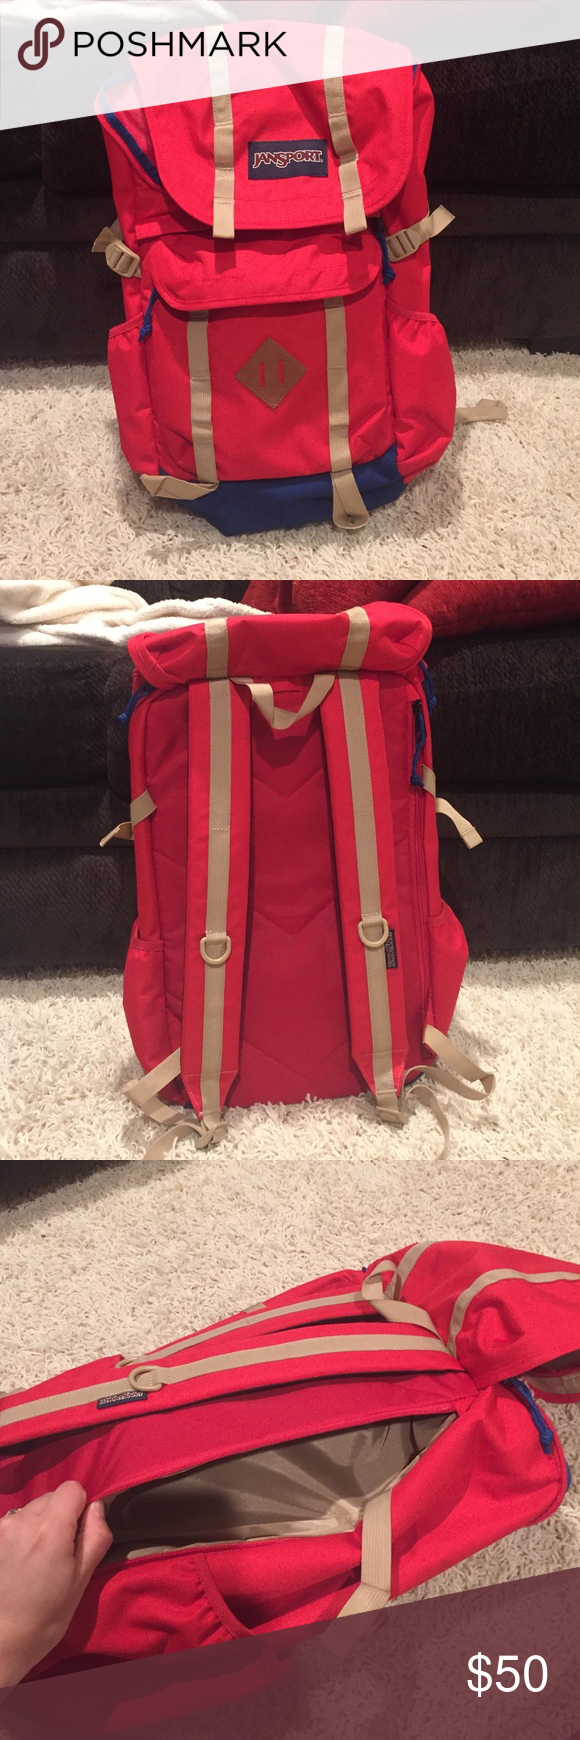 Jansport Backpack Red, blue, and tan. It's very spacious. Has a big main compartment, front pocket, 2 side pockets for water bottles, and a compartment in the back. It also has a laptop sleeve. This bag is brand new, unused! Jansport Bags Backpacks